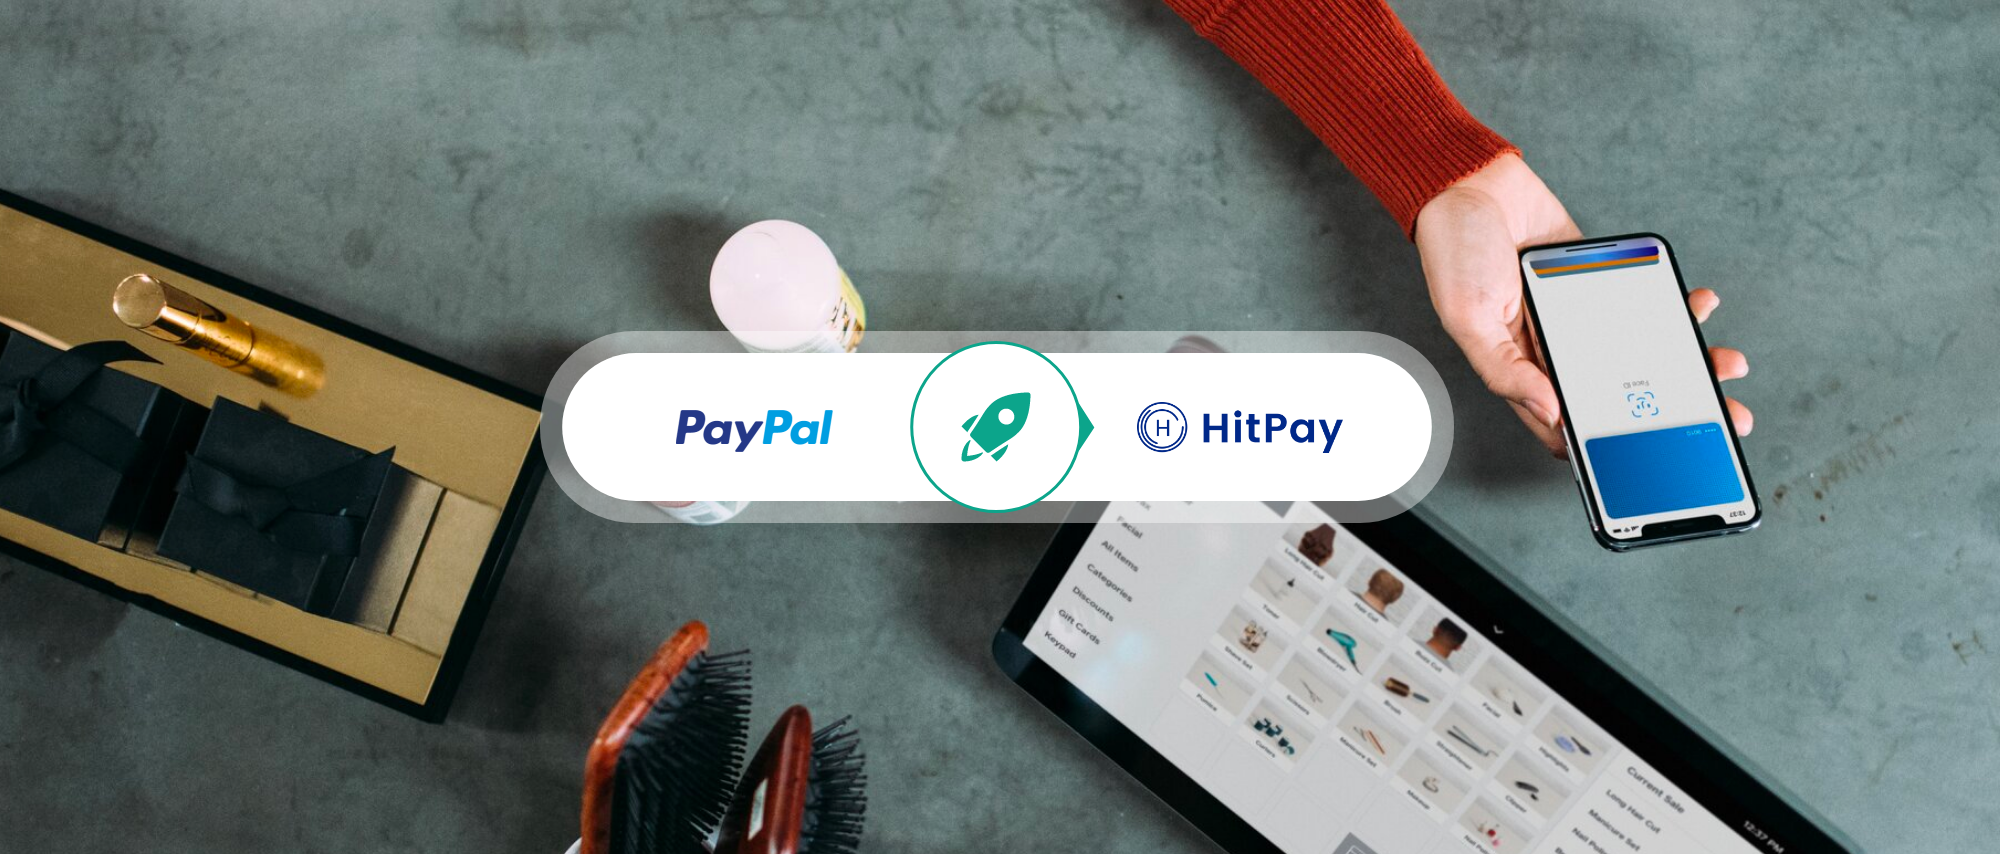 HitPay: A One-Tap, Omni-Channel Payment Solution for SMEs